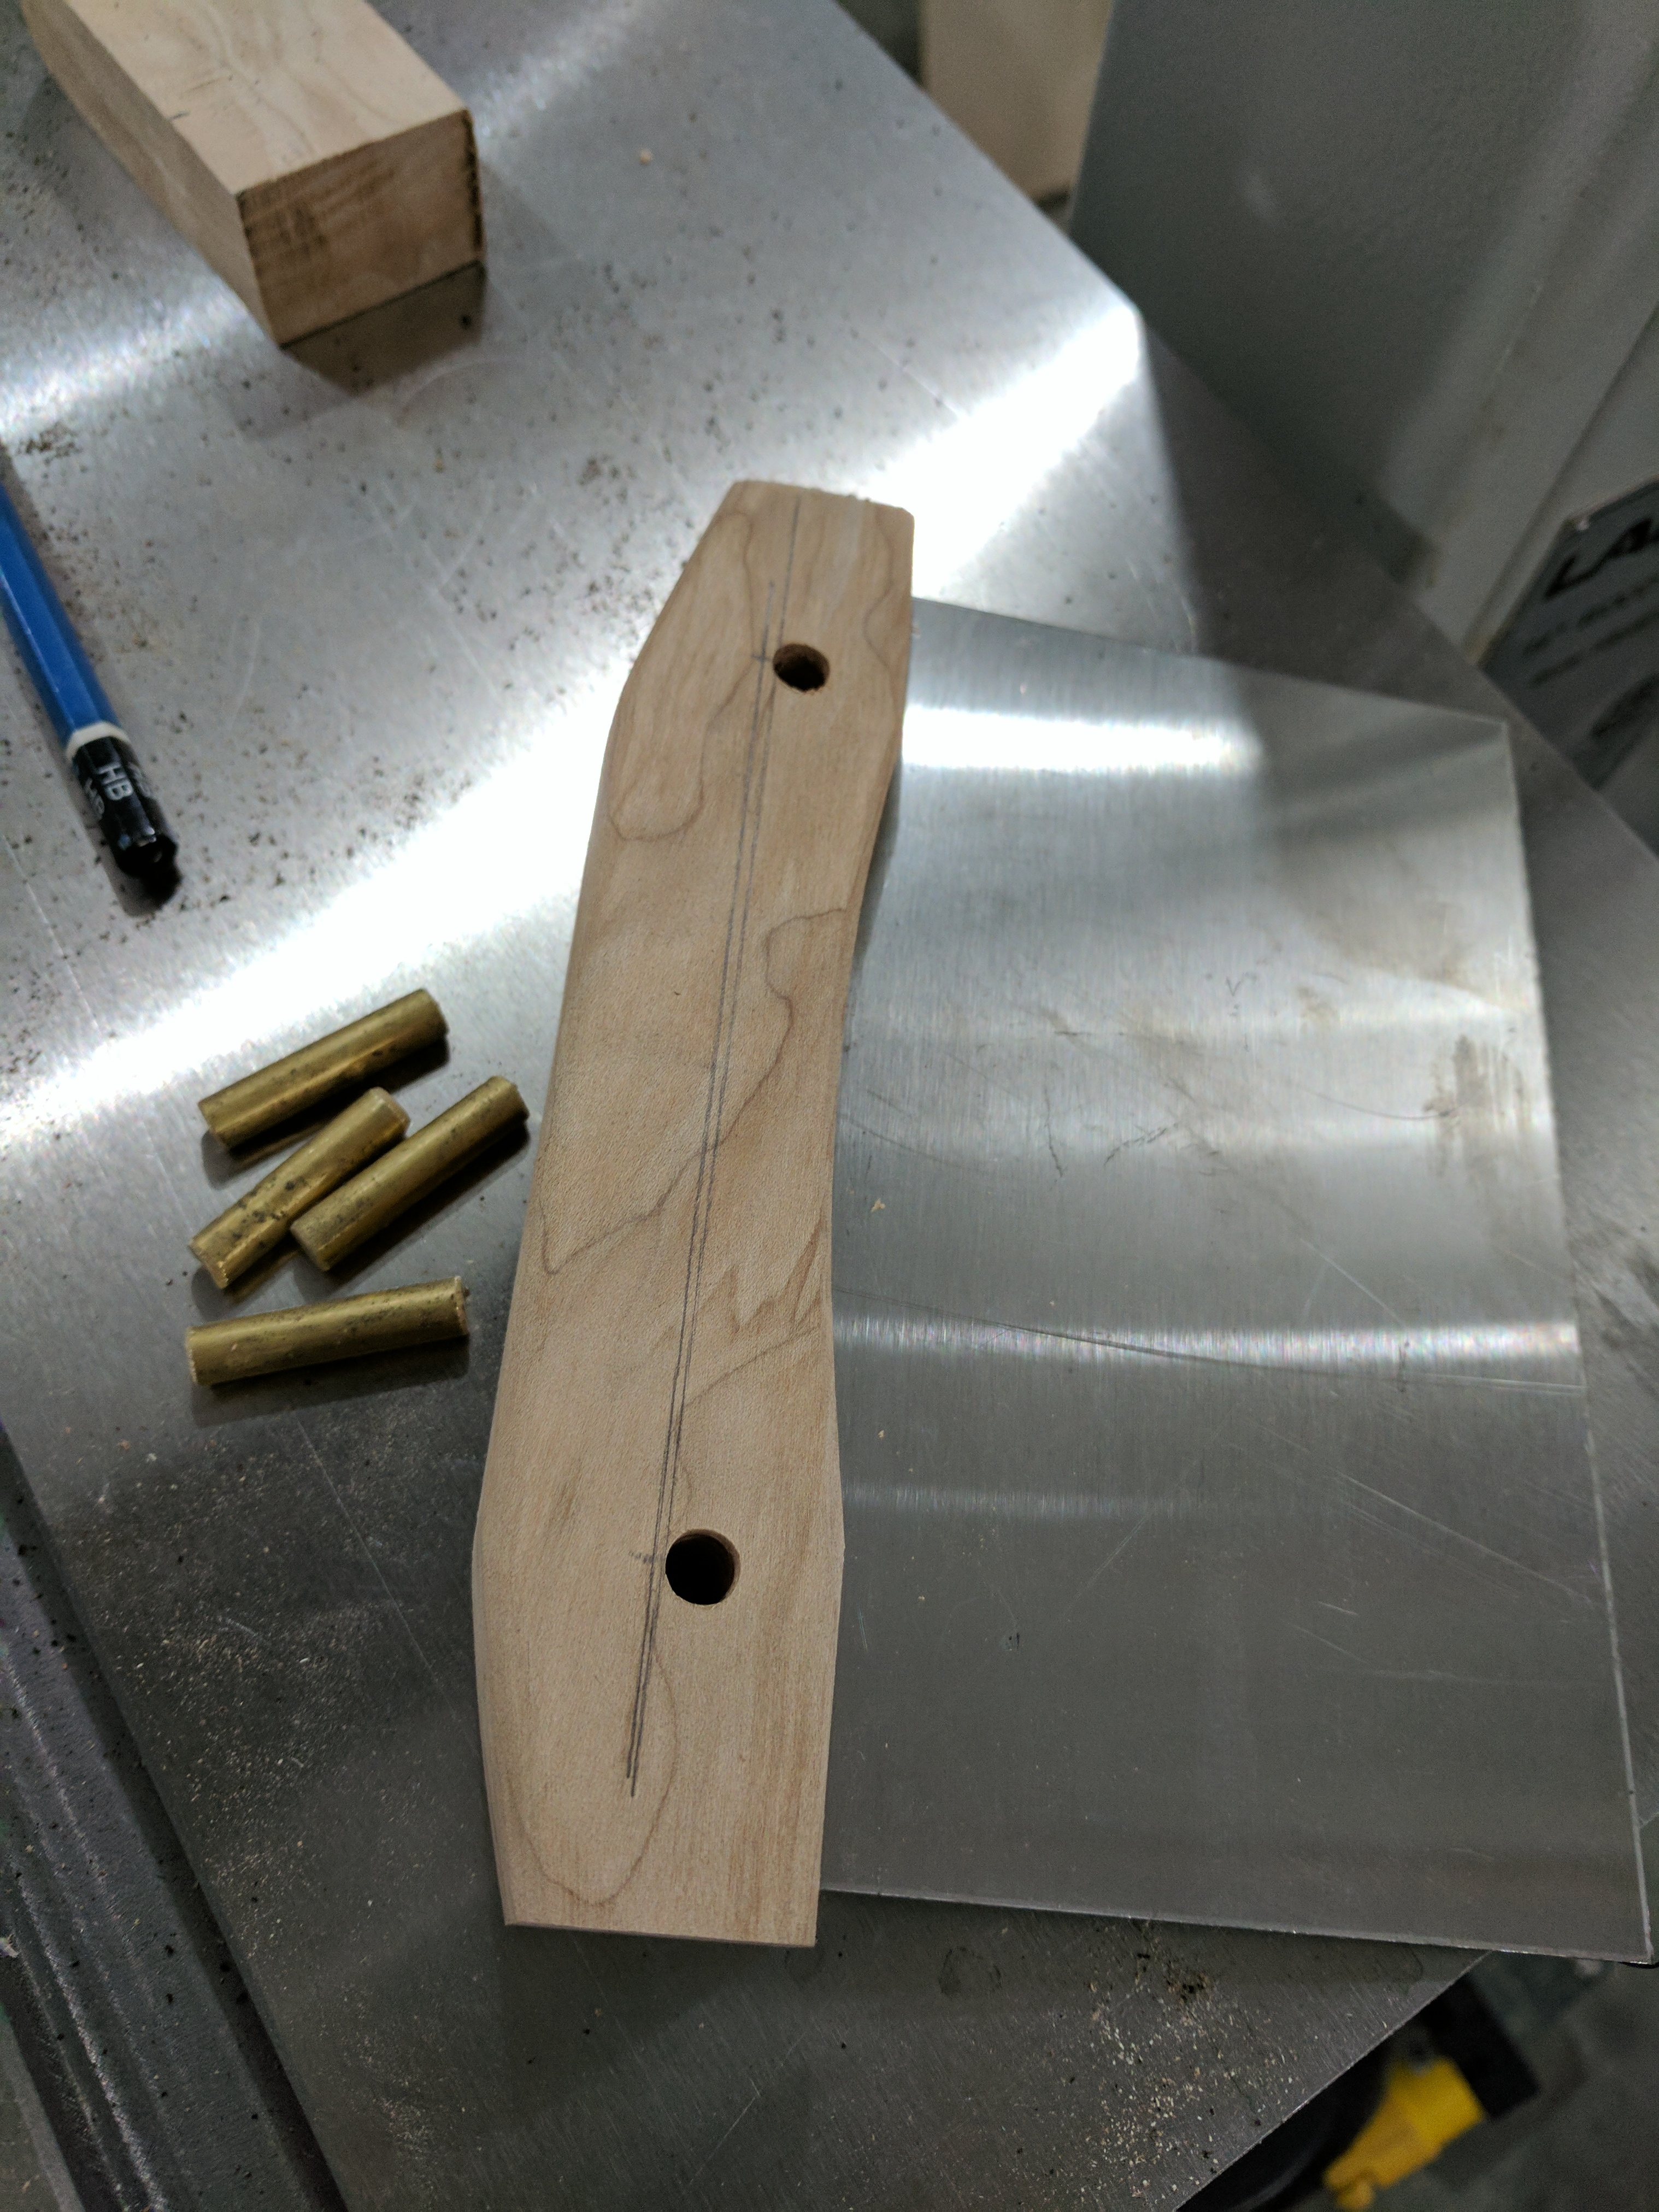 Bench knife in progress with holes drilled